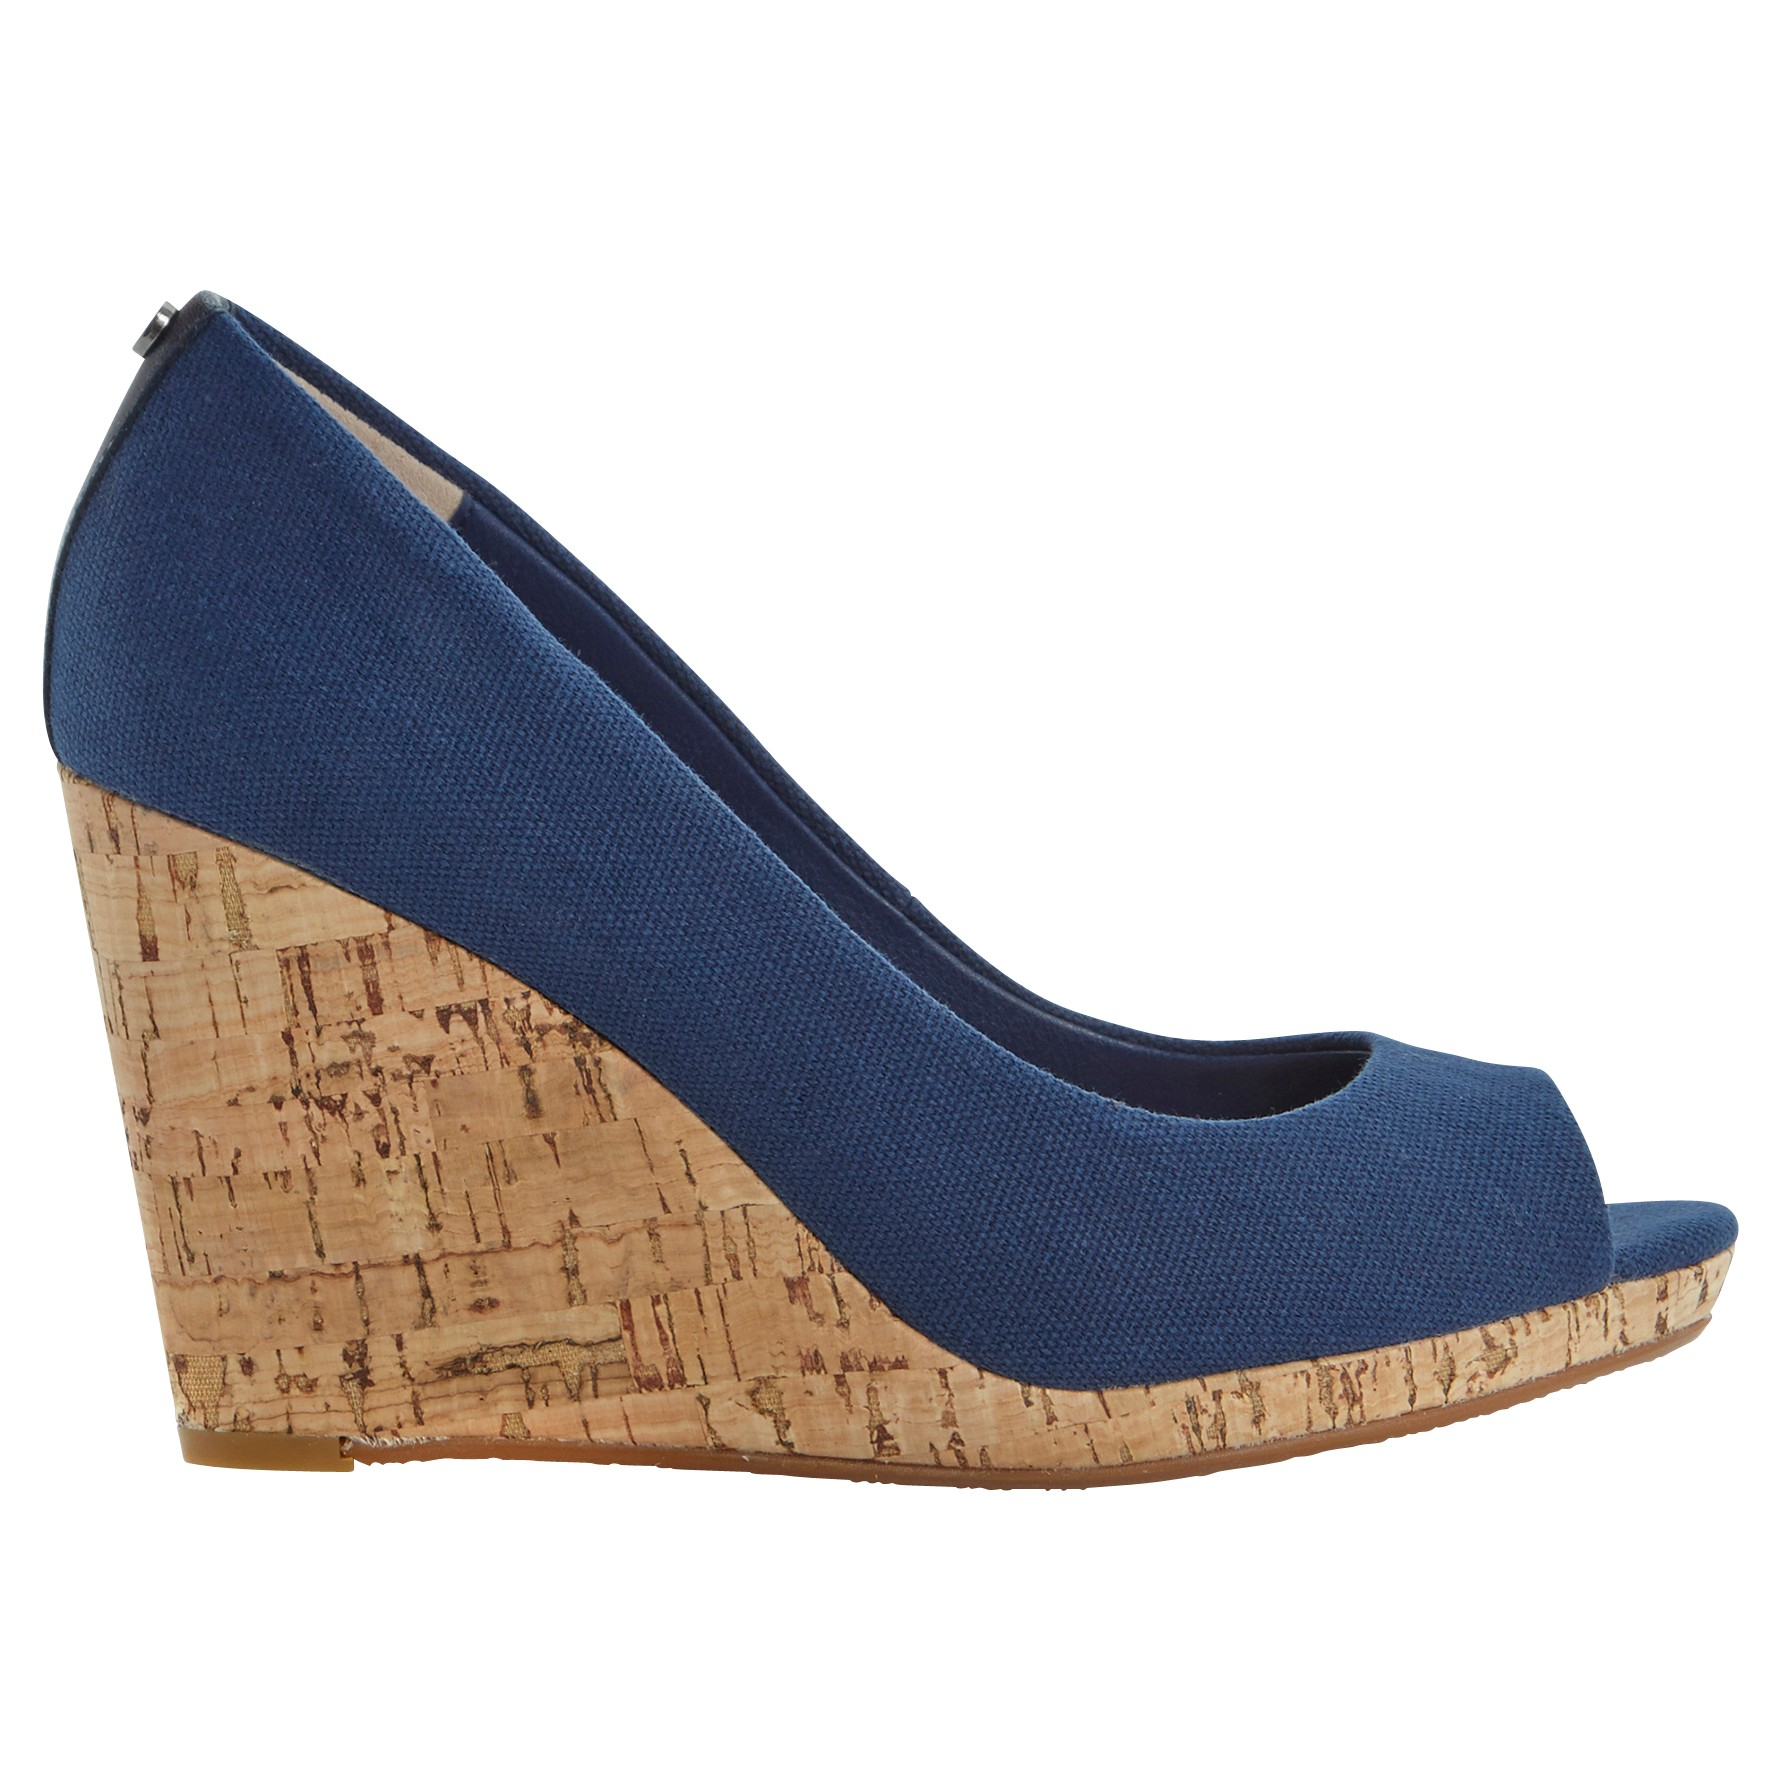 Womens Wedge Shoes Navy